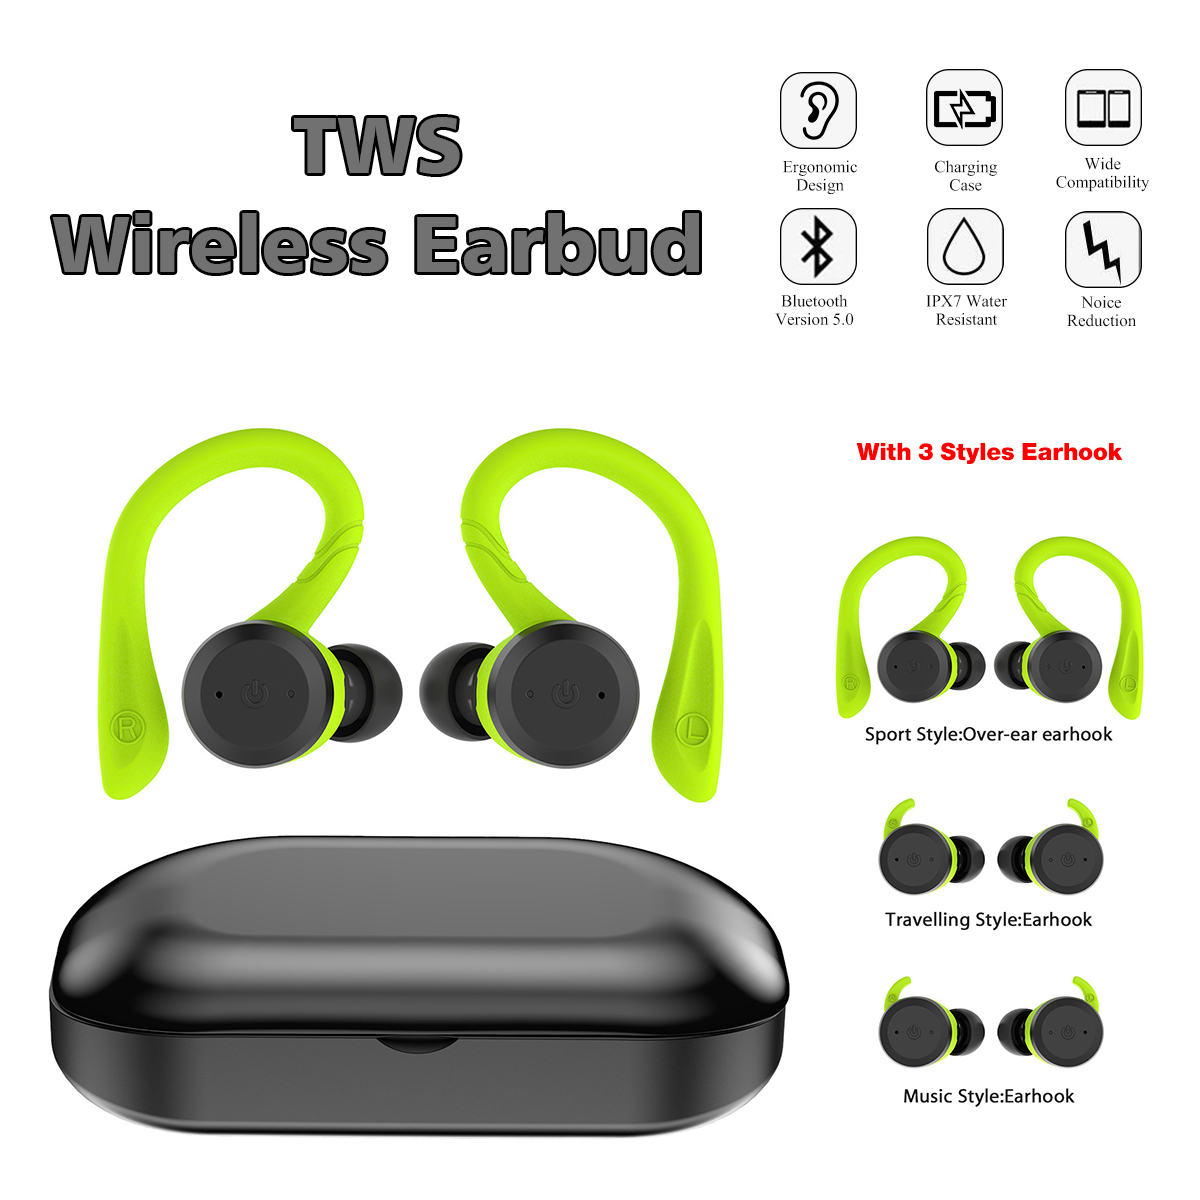 [bluetooth 5.0] Mini Wireless Earphone Stereo IPX7 Waterproof Noise Reduction With Charging Case